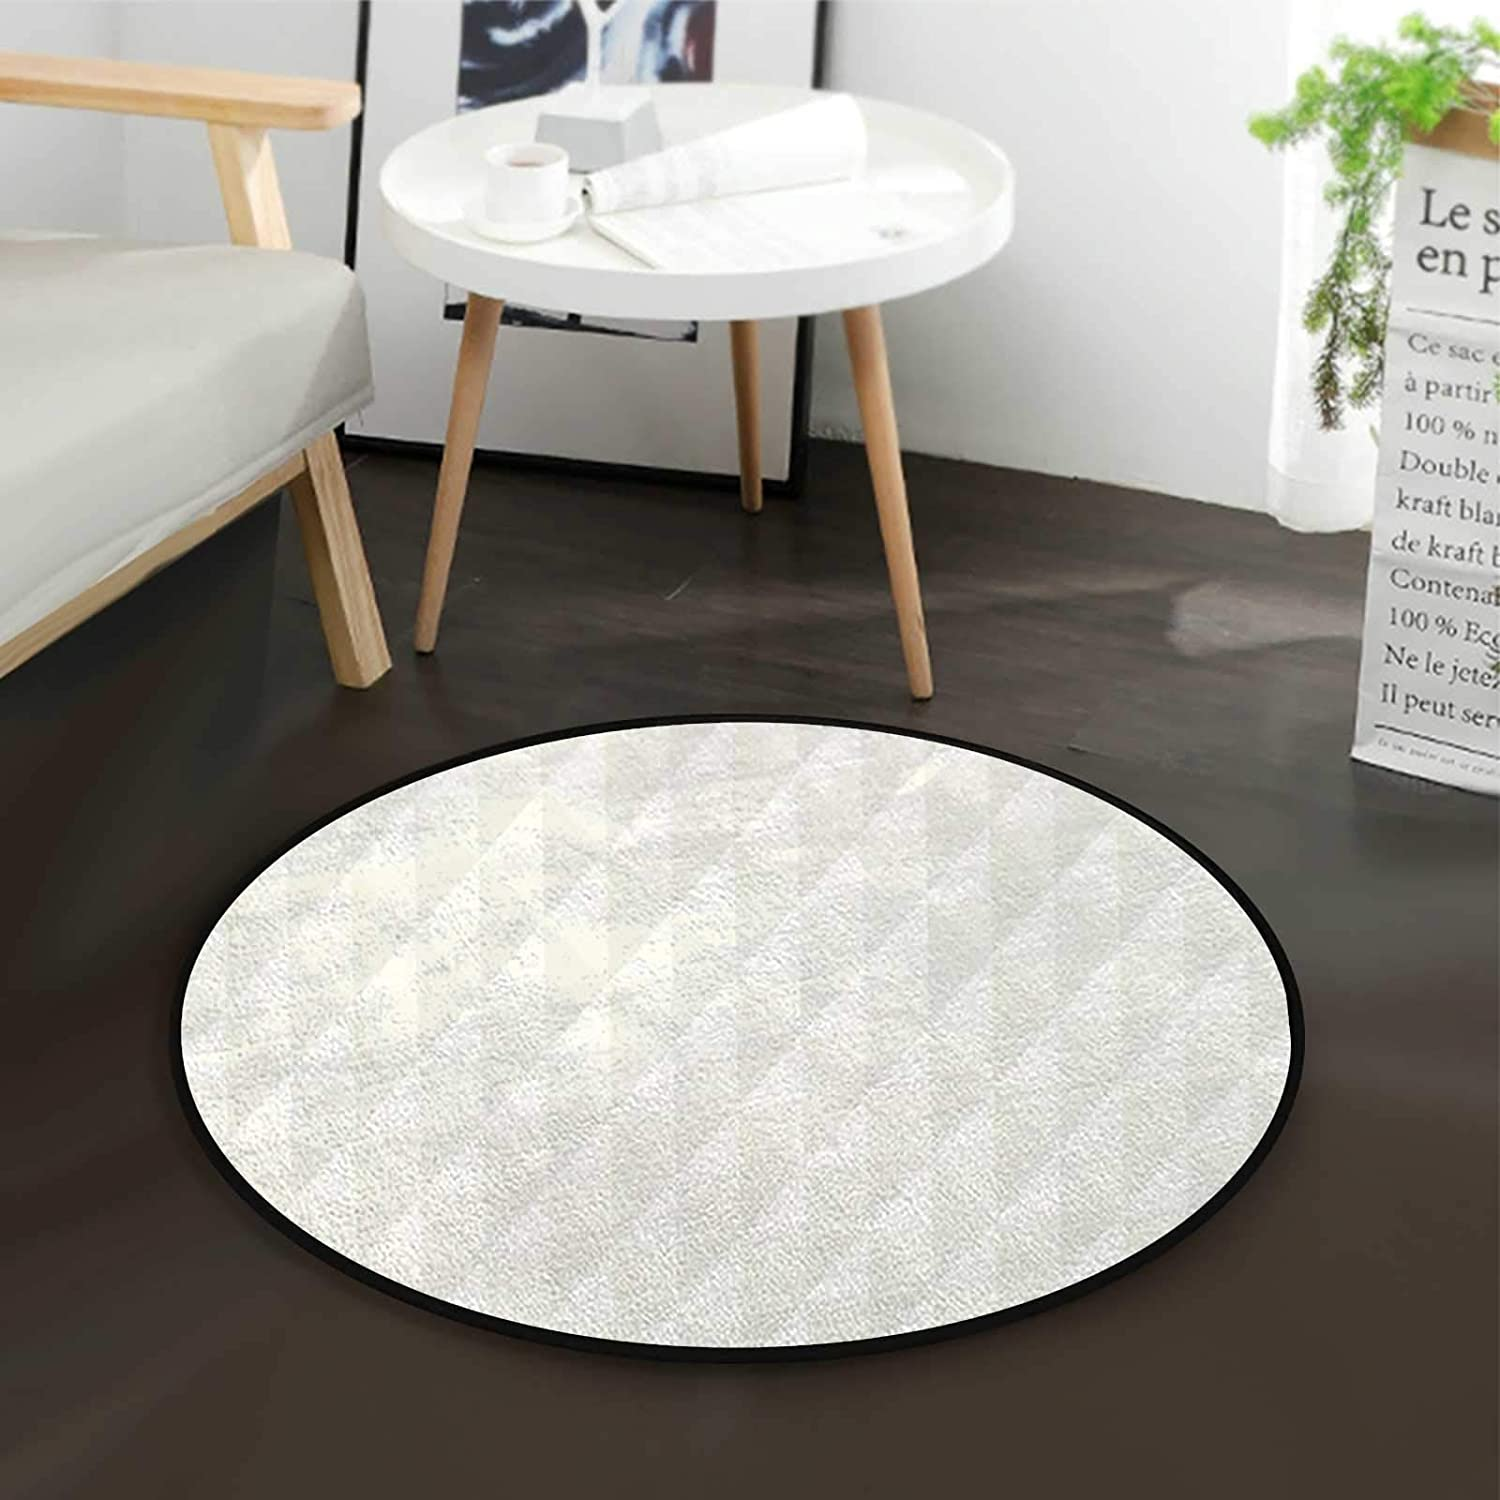 Diamond Triangle Cheap mail order specialty store Forms Office Swivel Chair Mats 70% OFF Outlet Floor Round Mat